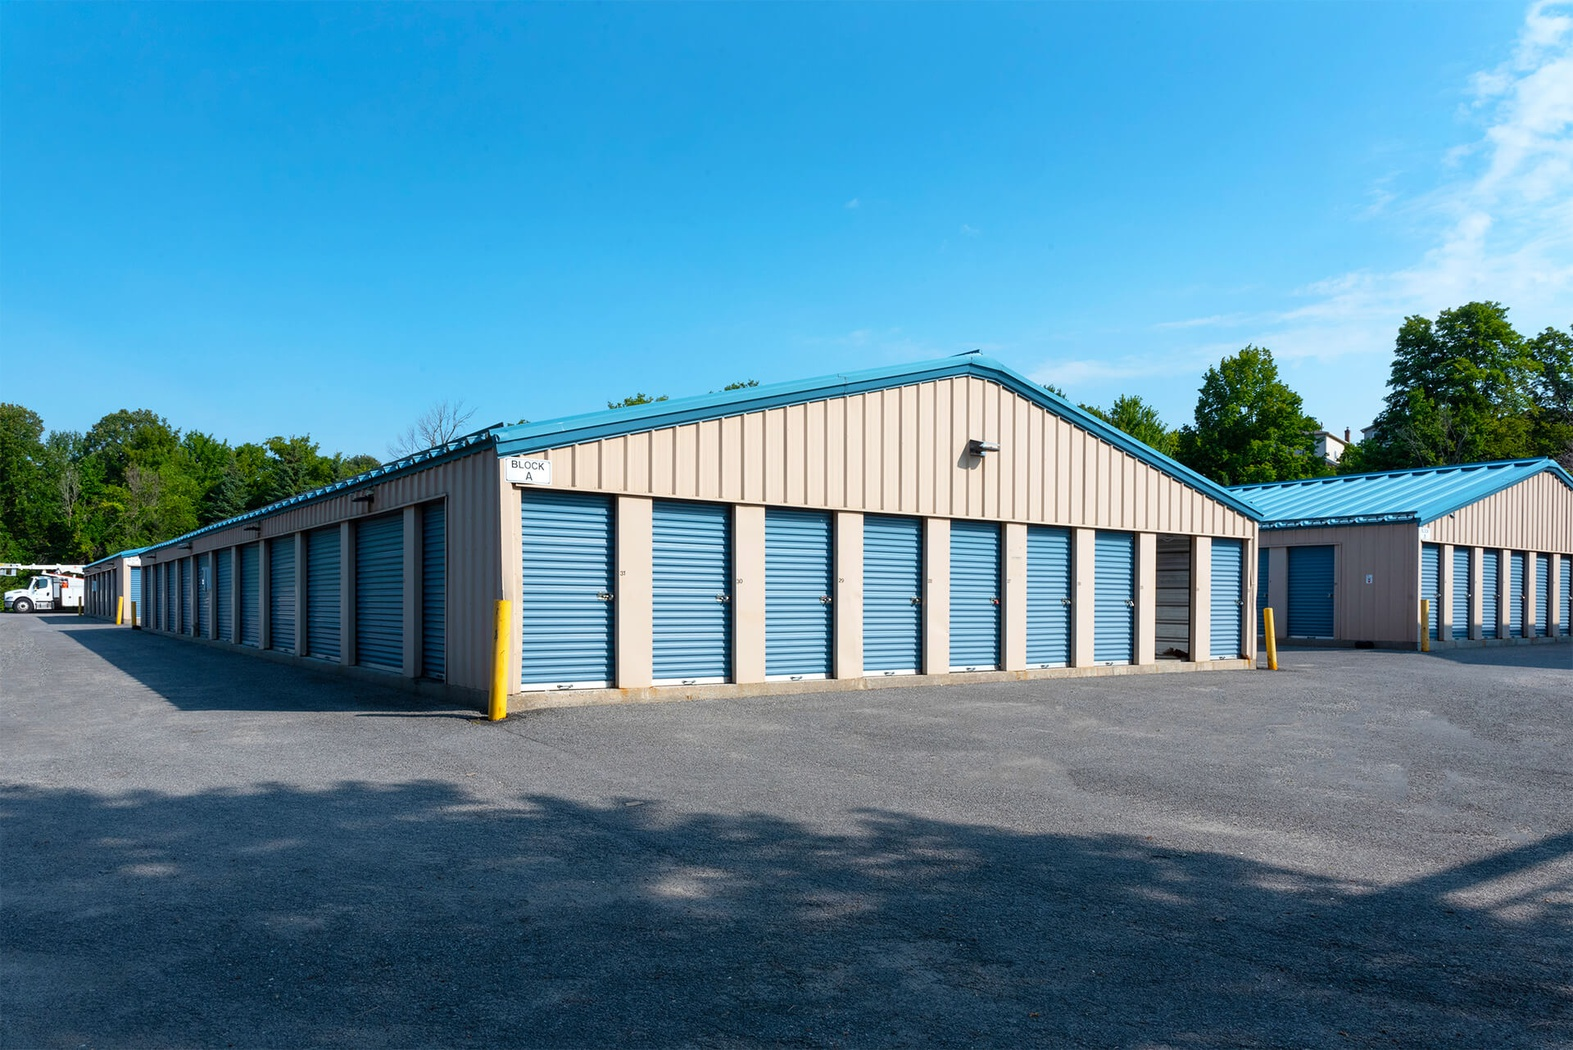 Rent Kanata storage units at 38 Edgewater Street. We offer a wide-range of affordable self storage units and your first 4 weeks are free!